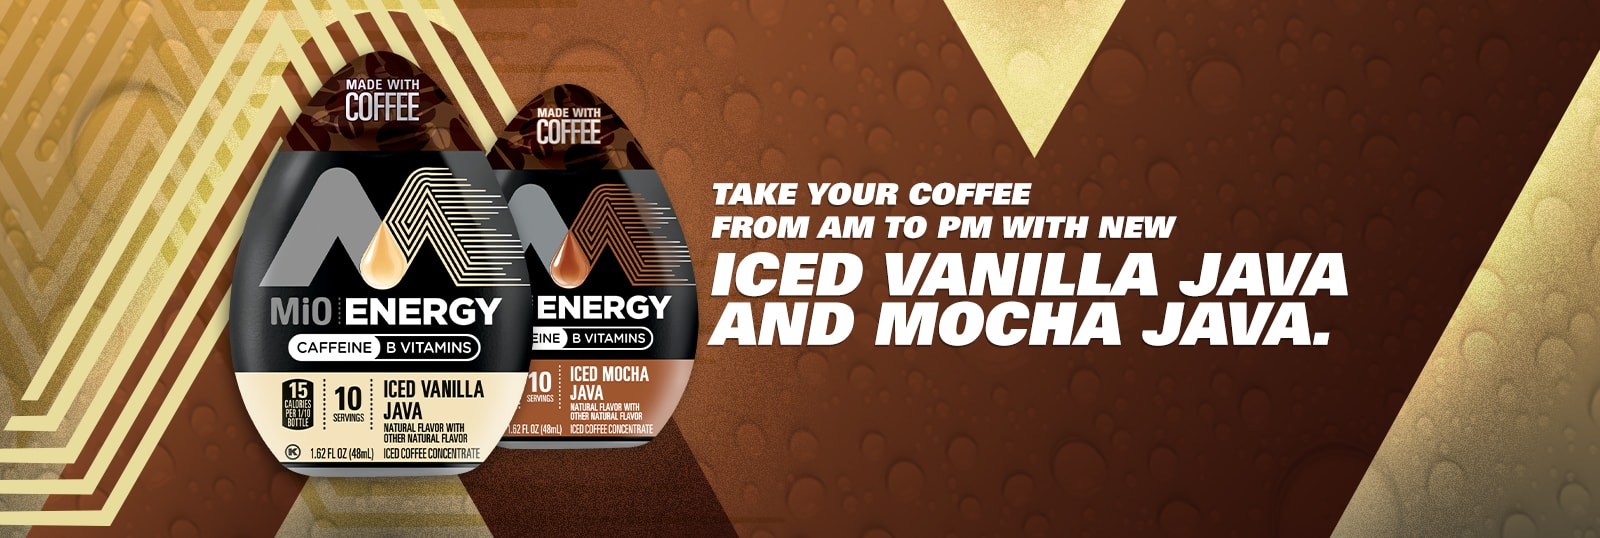 Iced Vanilla JAVA and Mocha Java